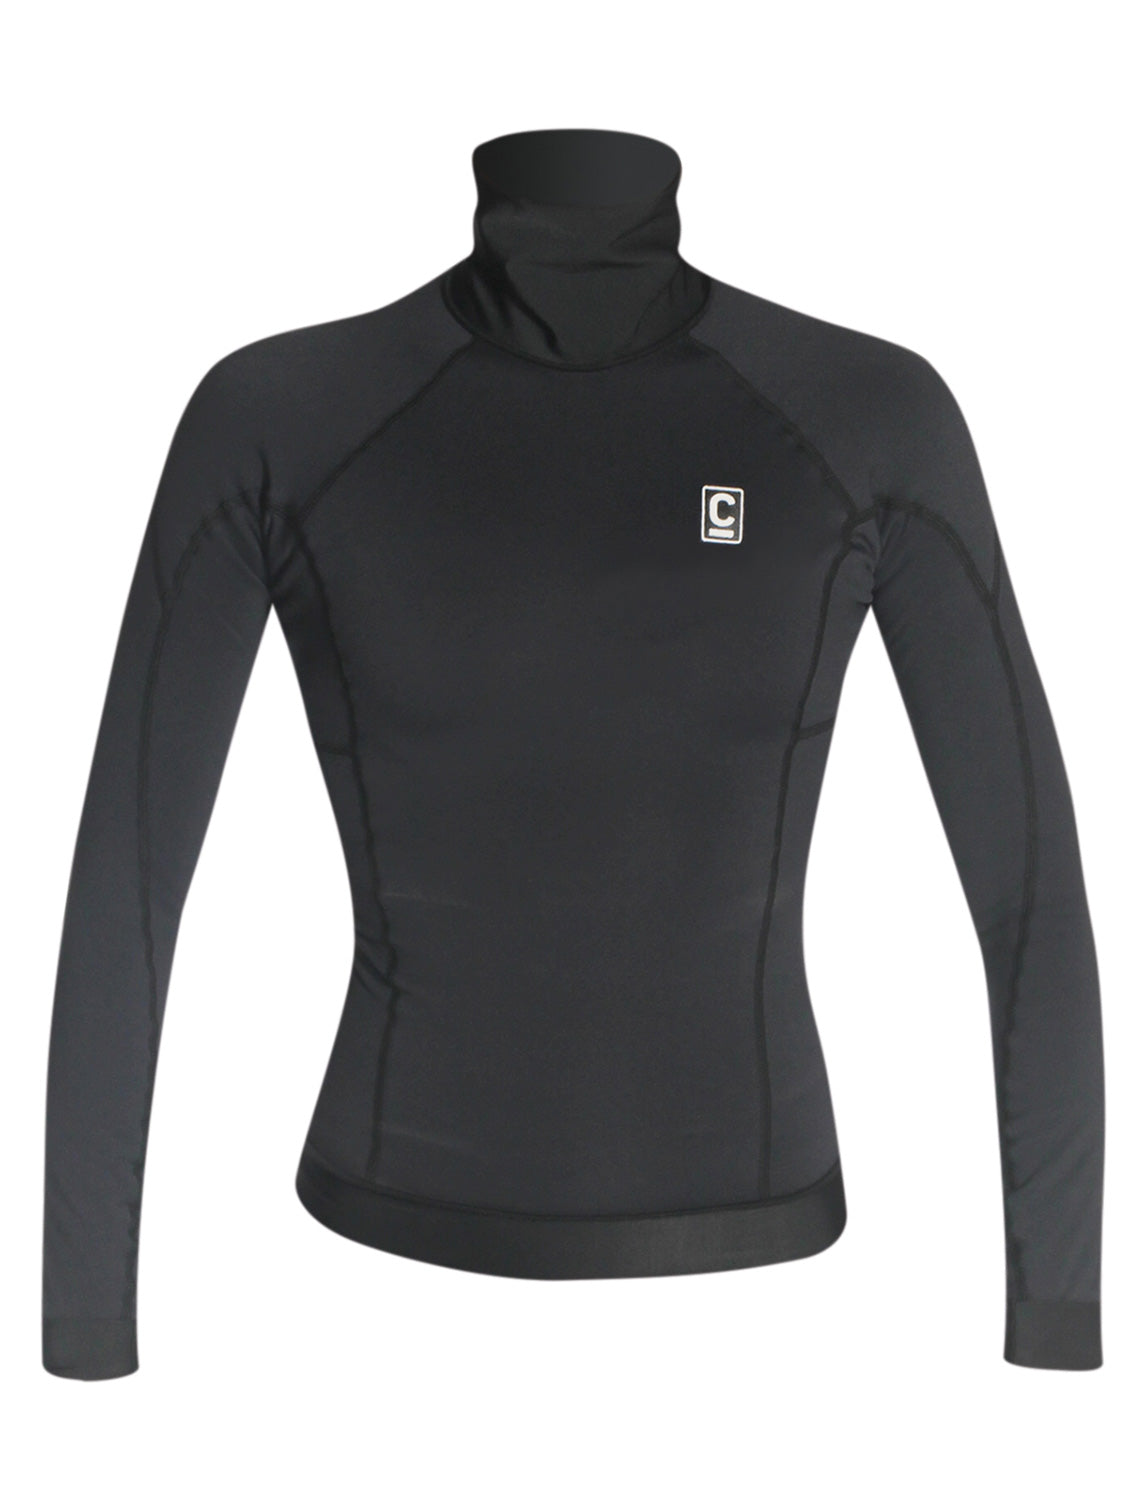 WOMENS LONG SLEEVE HDi SKIN